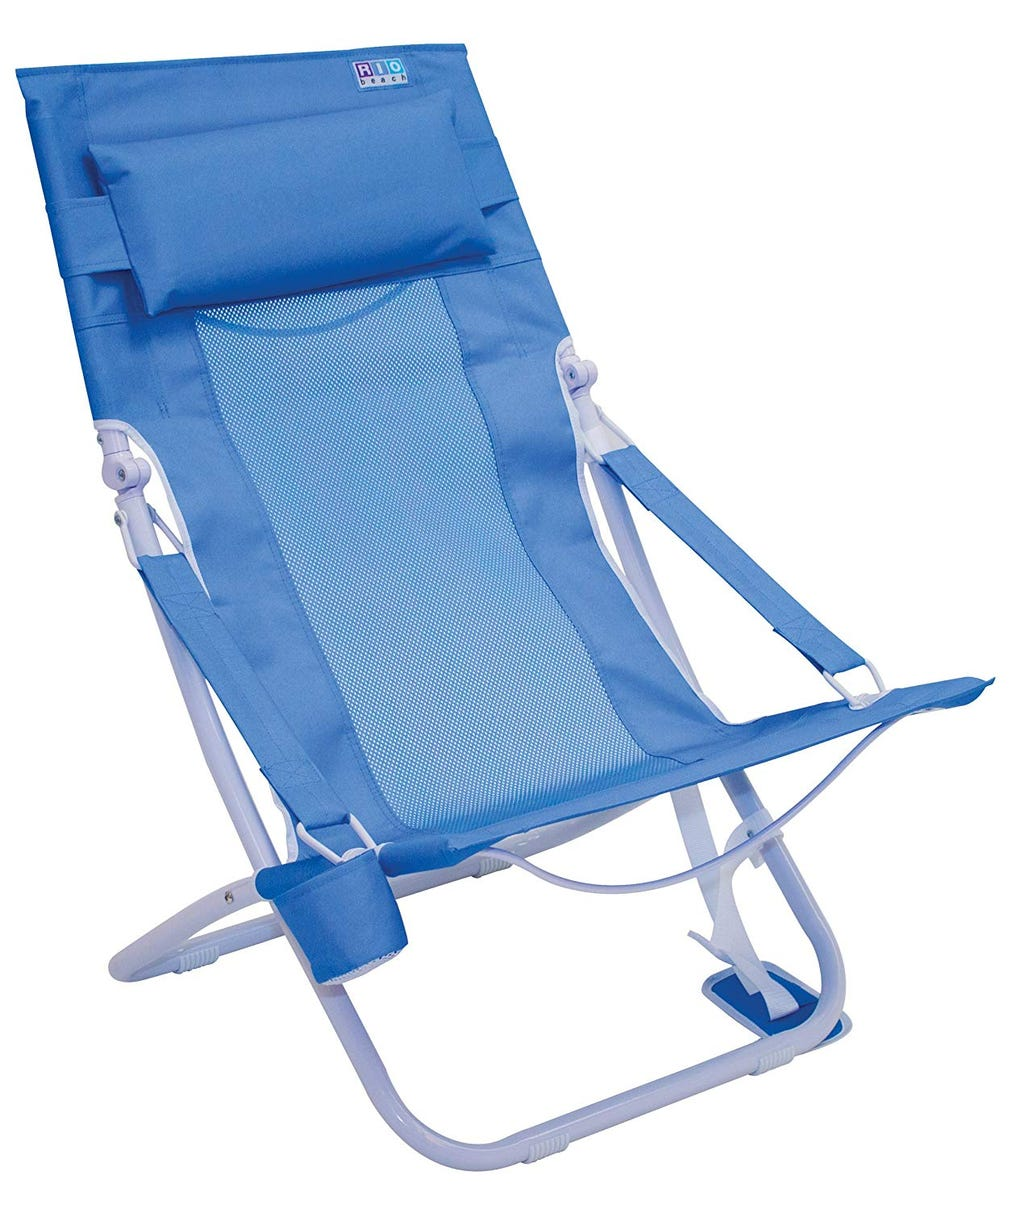 Wondrous Best Beach Chairs 2019 Folding Outdoor Chair Reviews Frankydiablos Diy Chair Ideas Frankydiabloscom